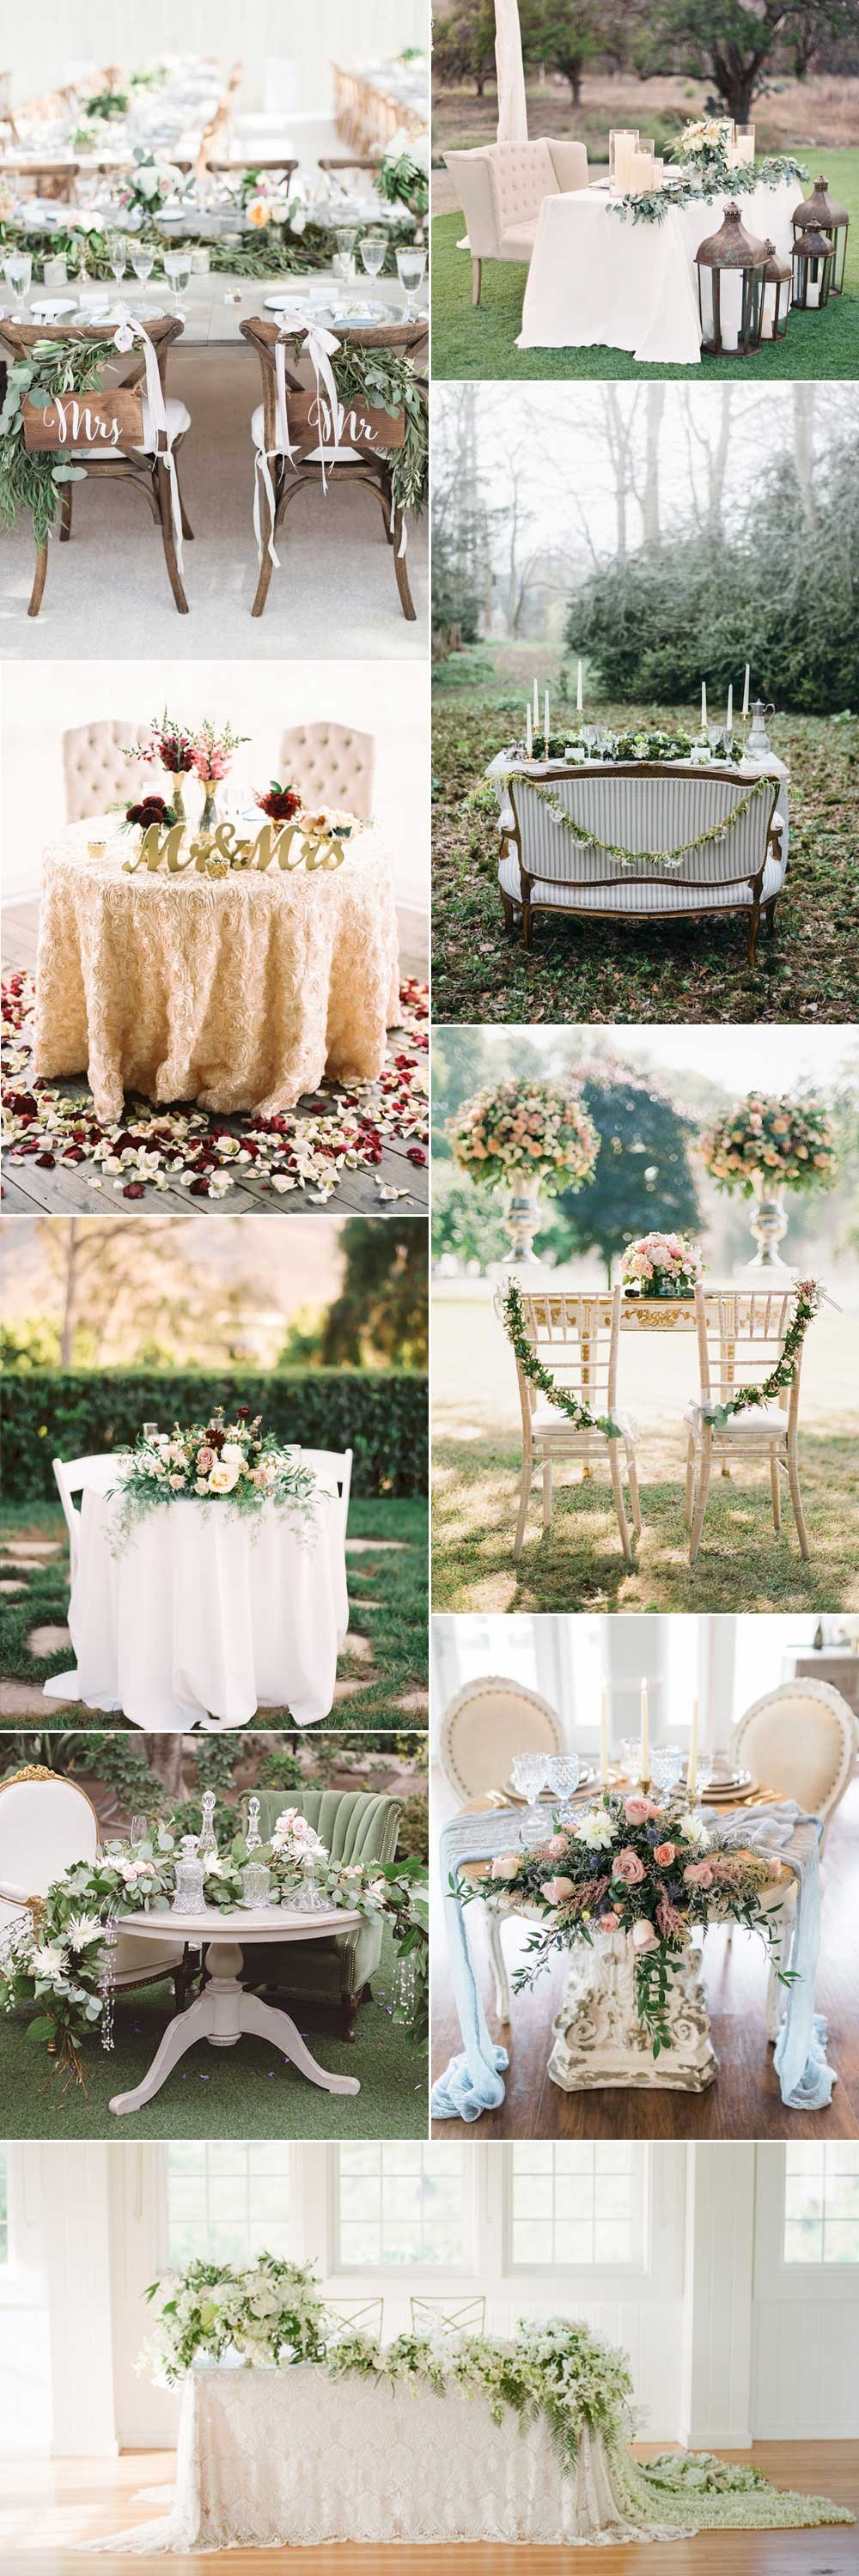 Sweetheart wedding tables for two